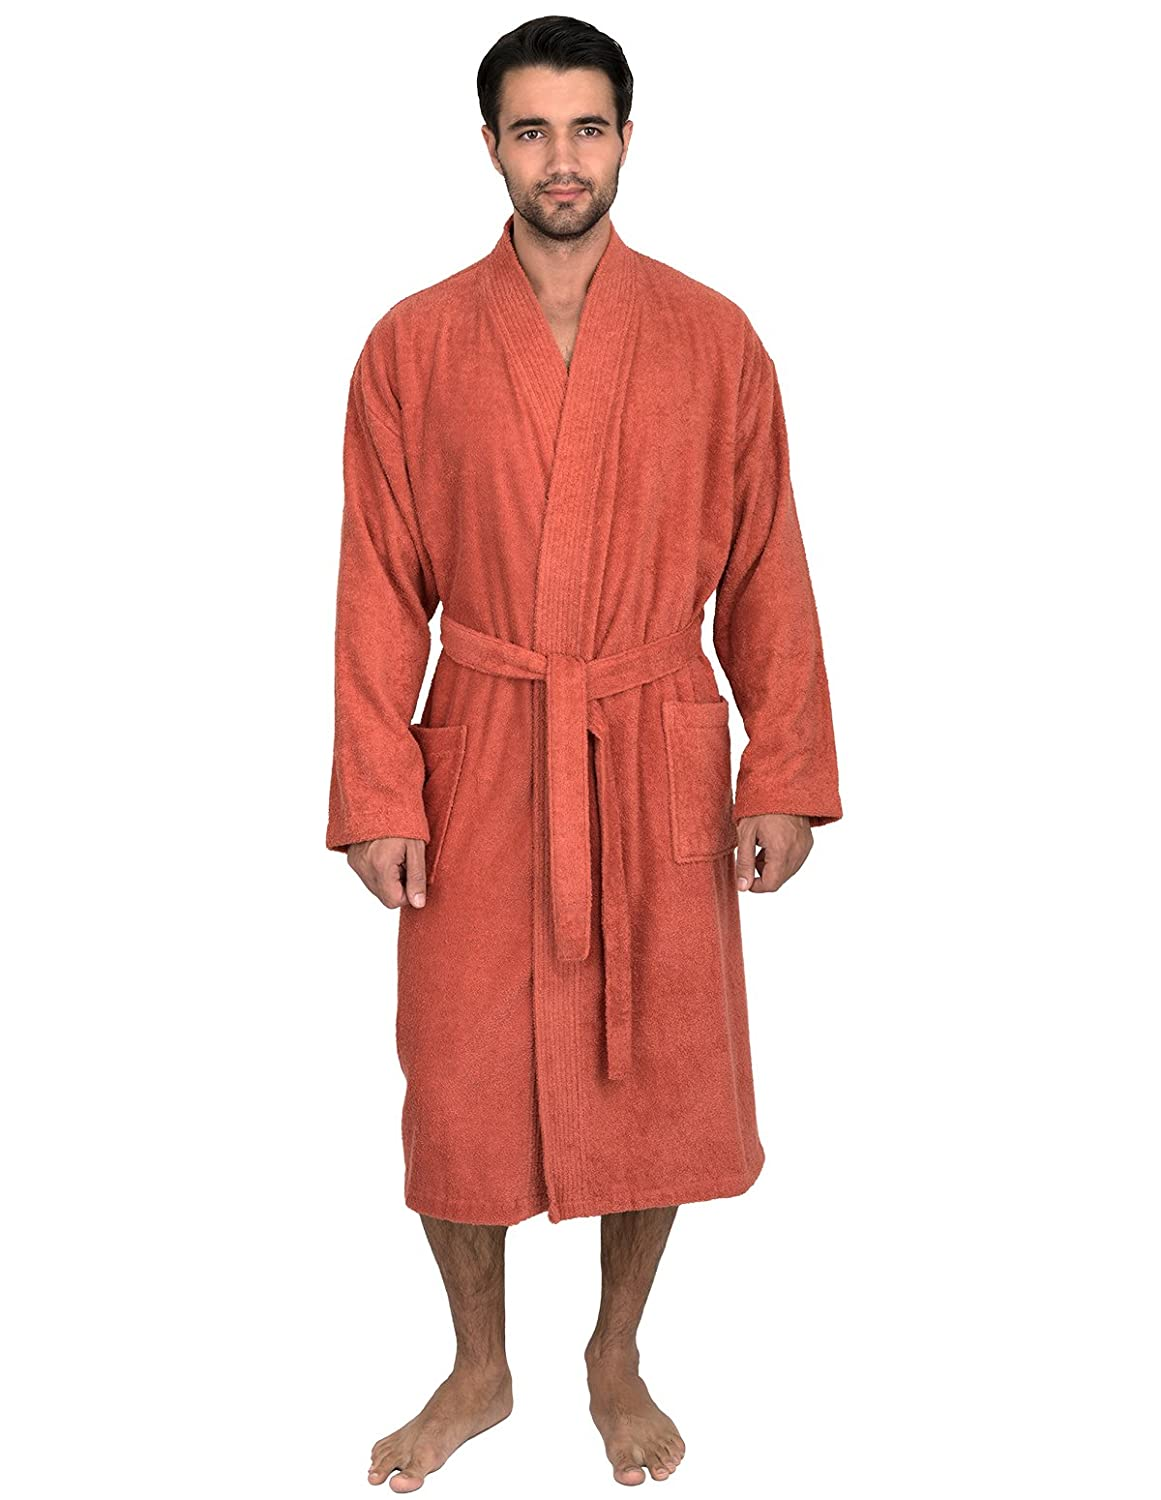 TowelSelections SLEEPWEAR メンズ B01LX7PSYS Small / Medium|Ginger Spice Ginger Spice Small / Medium